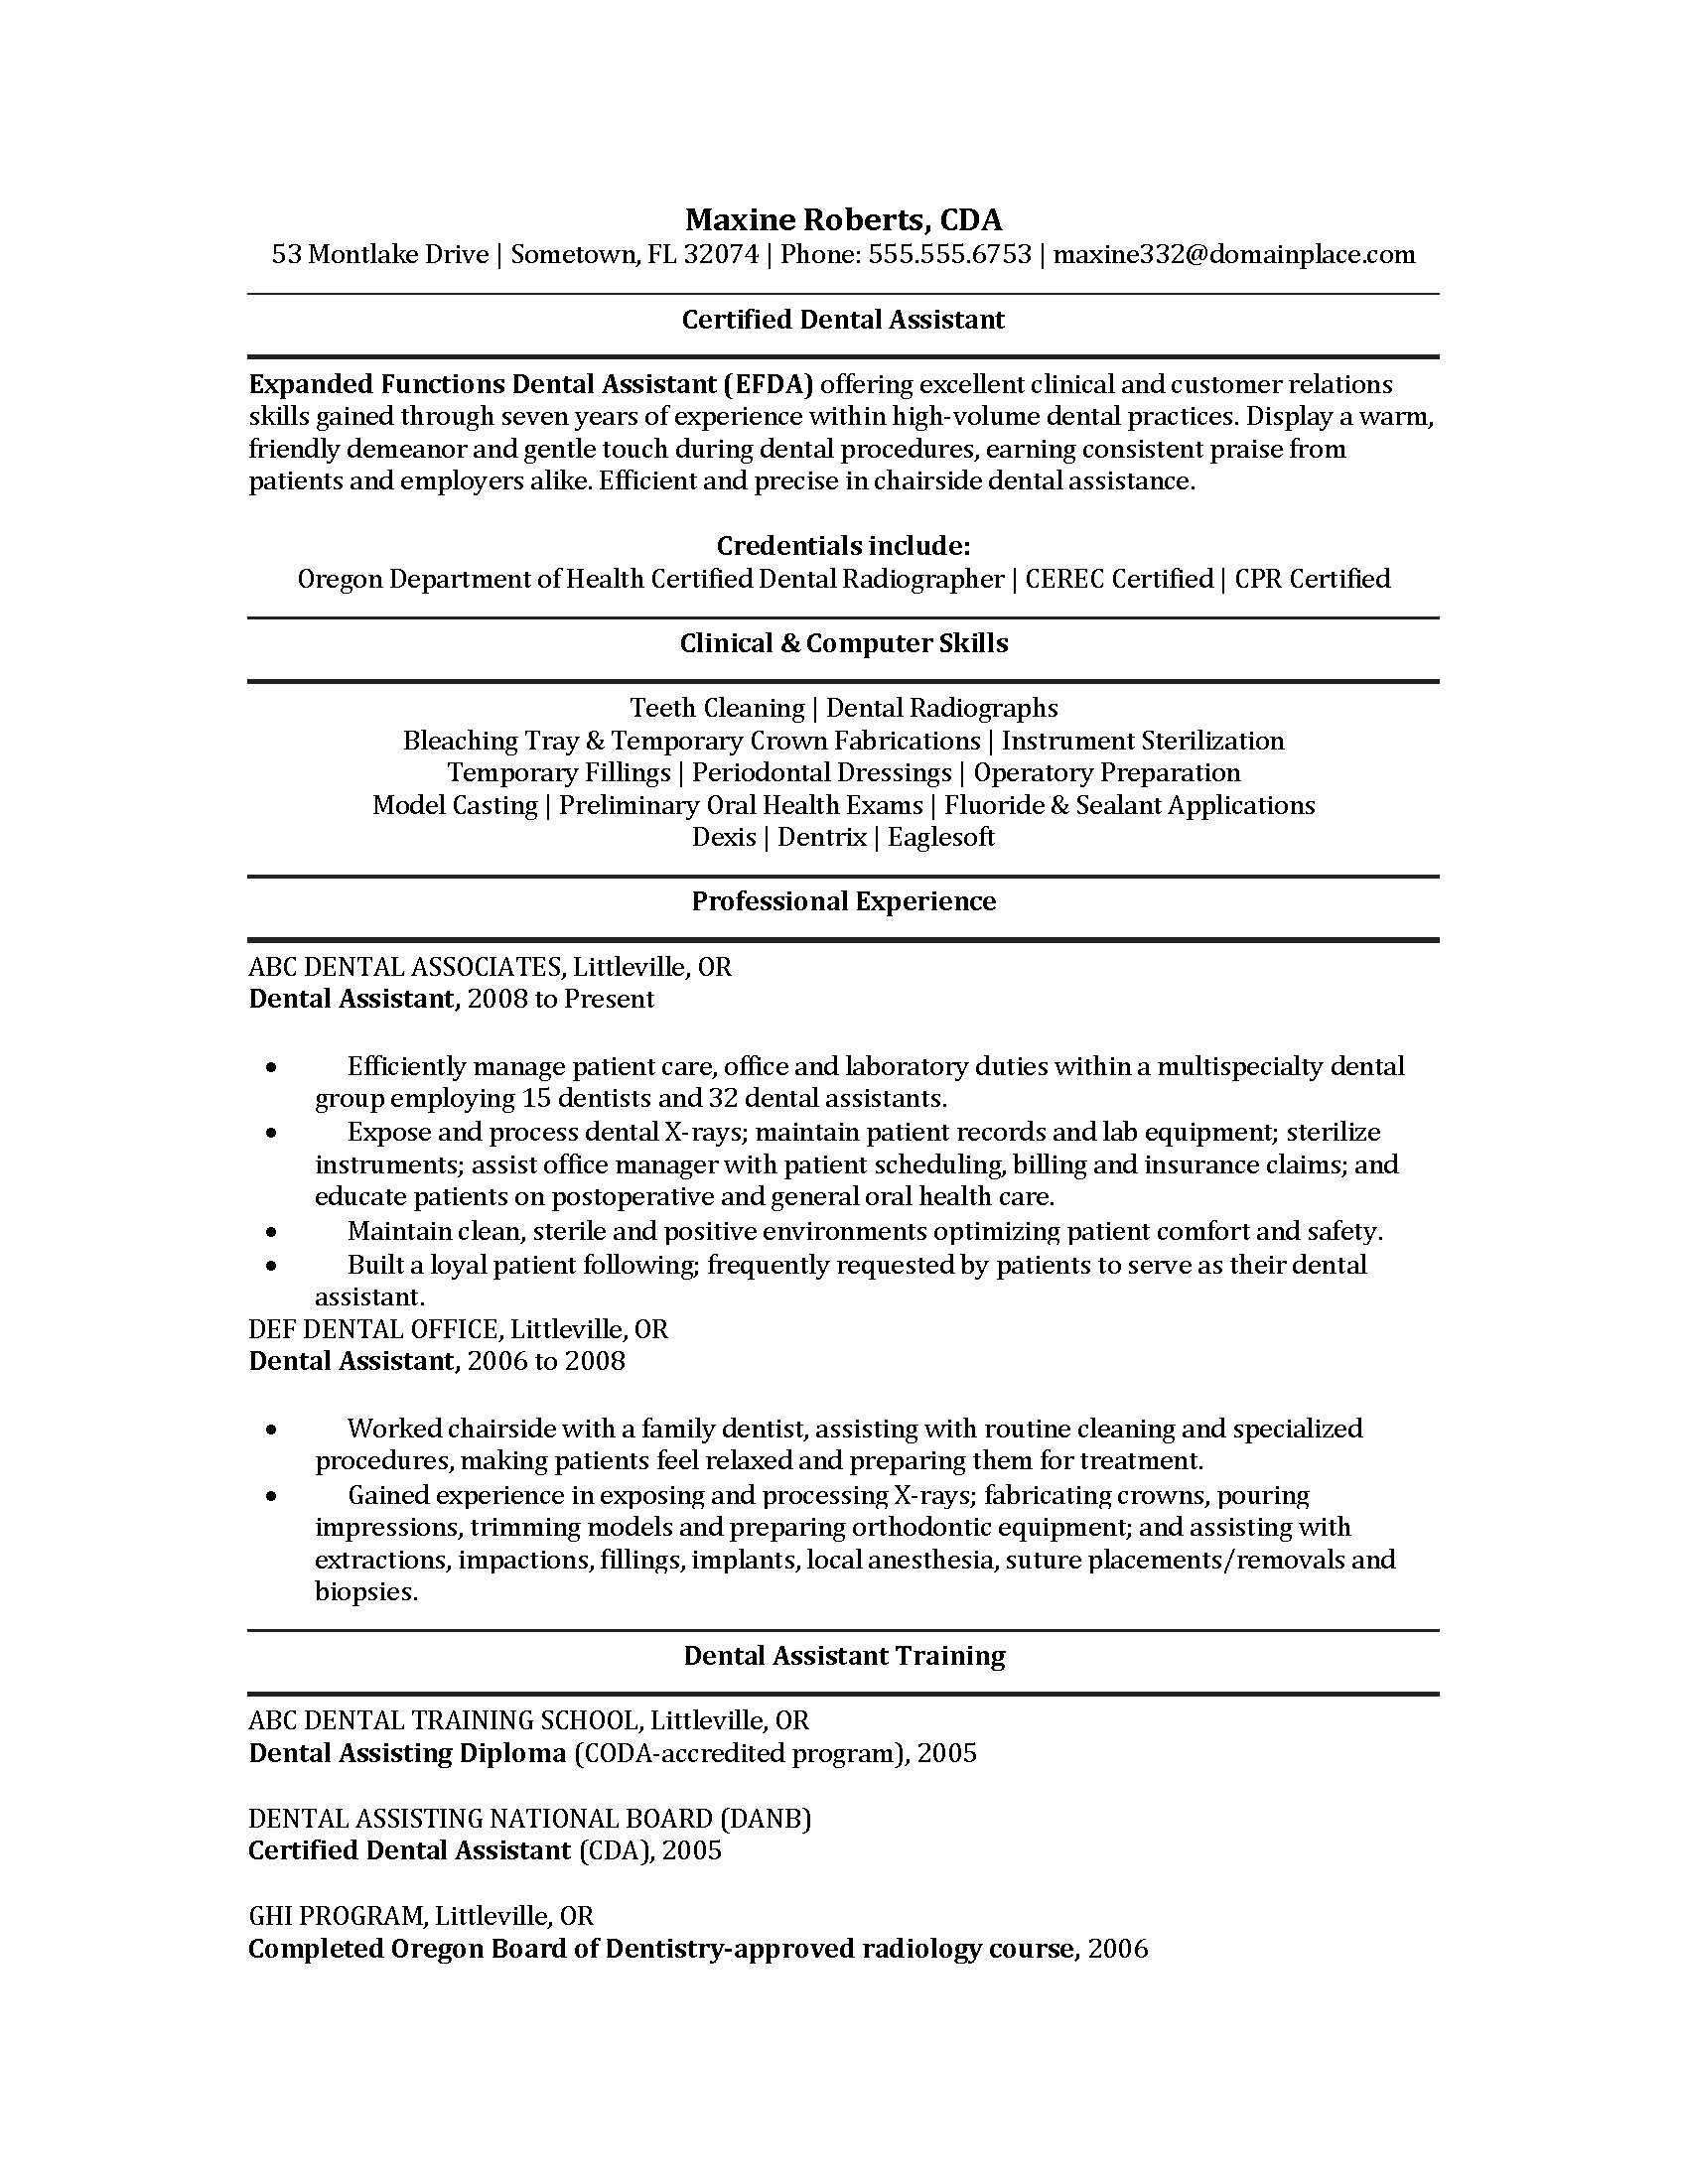 Veterinary Resume Sample Resume For Dental Hygienist Resum Hygiene Template